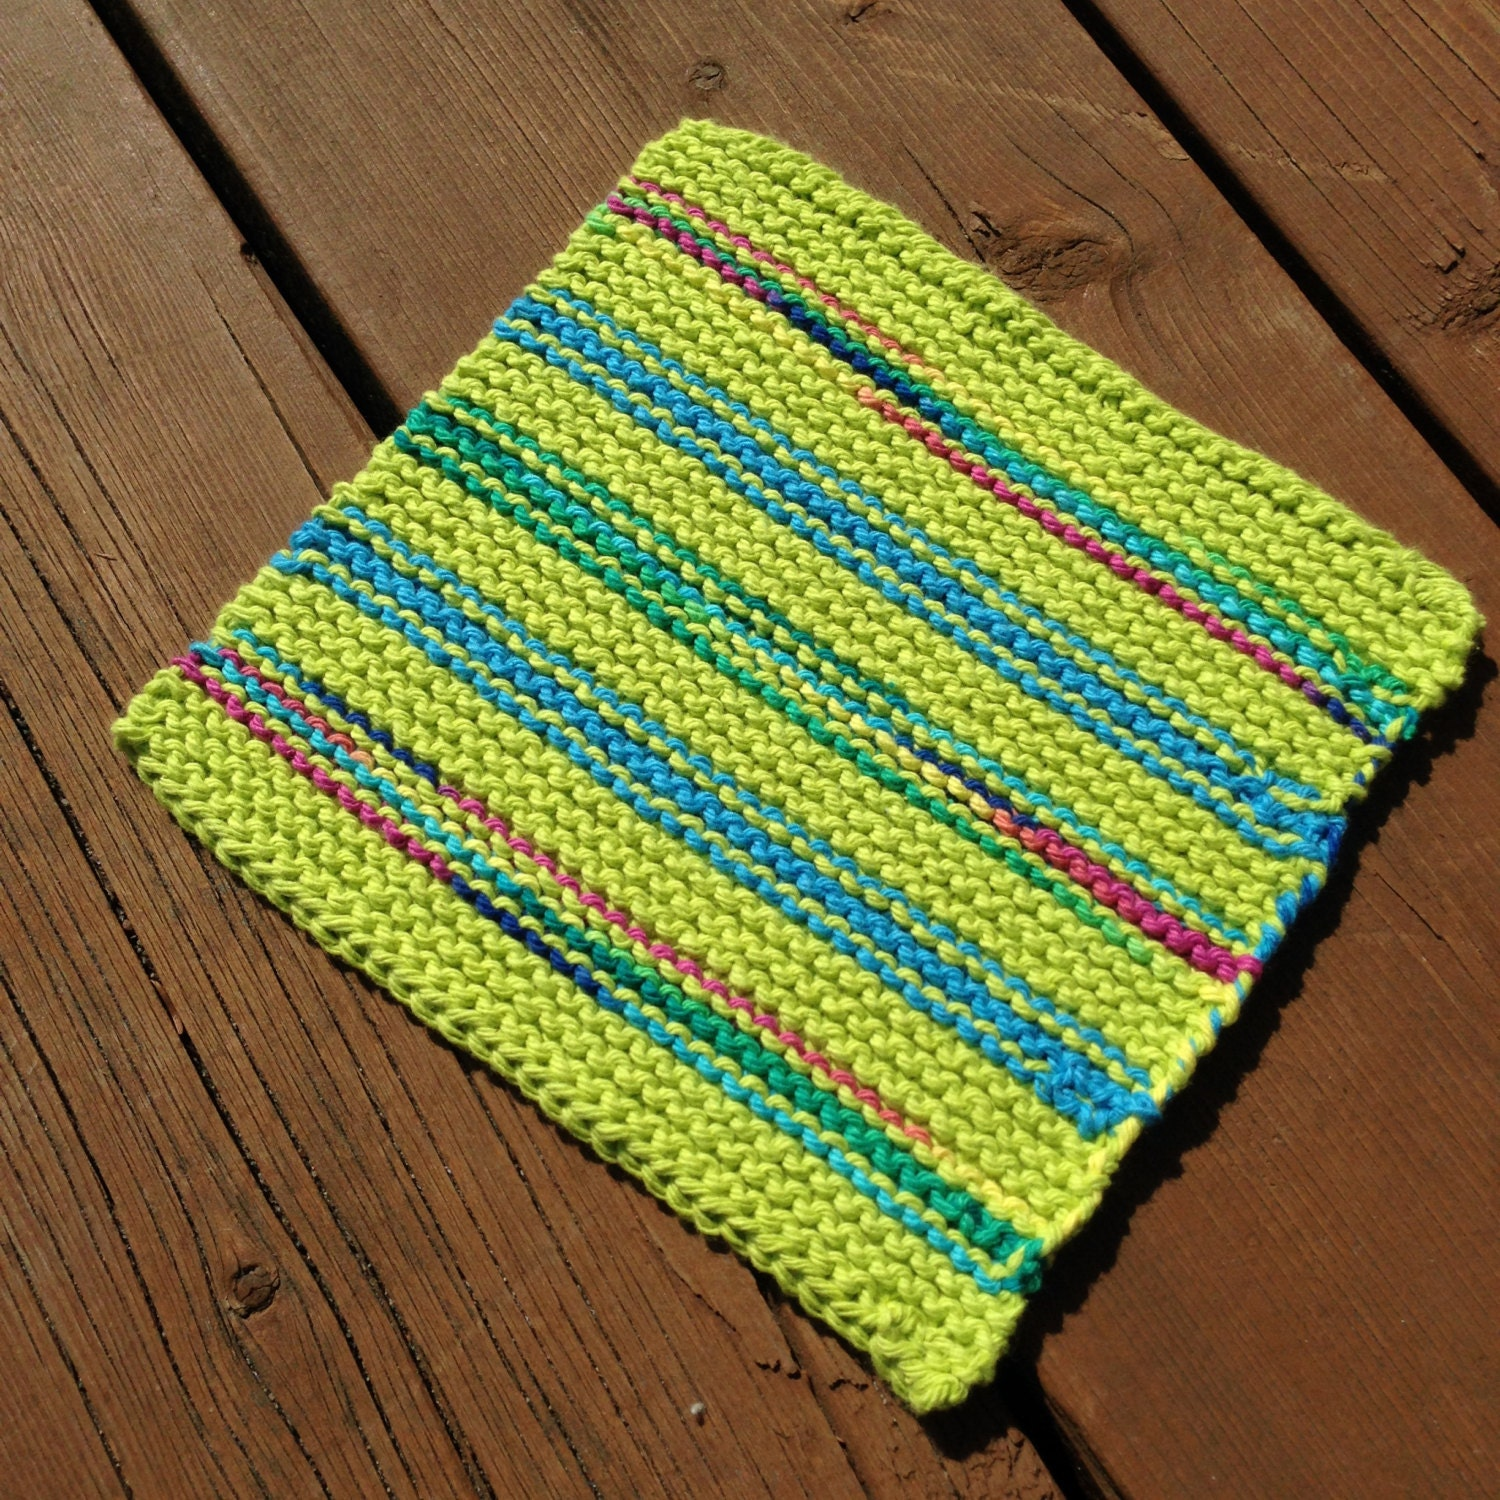 Dishcloth Knitted Dishcloth Cotton Dishcloth Washcloth by Bahde